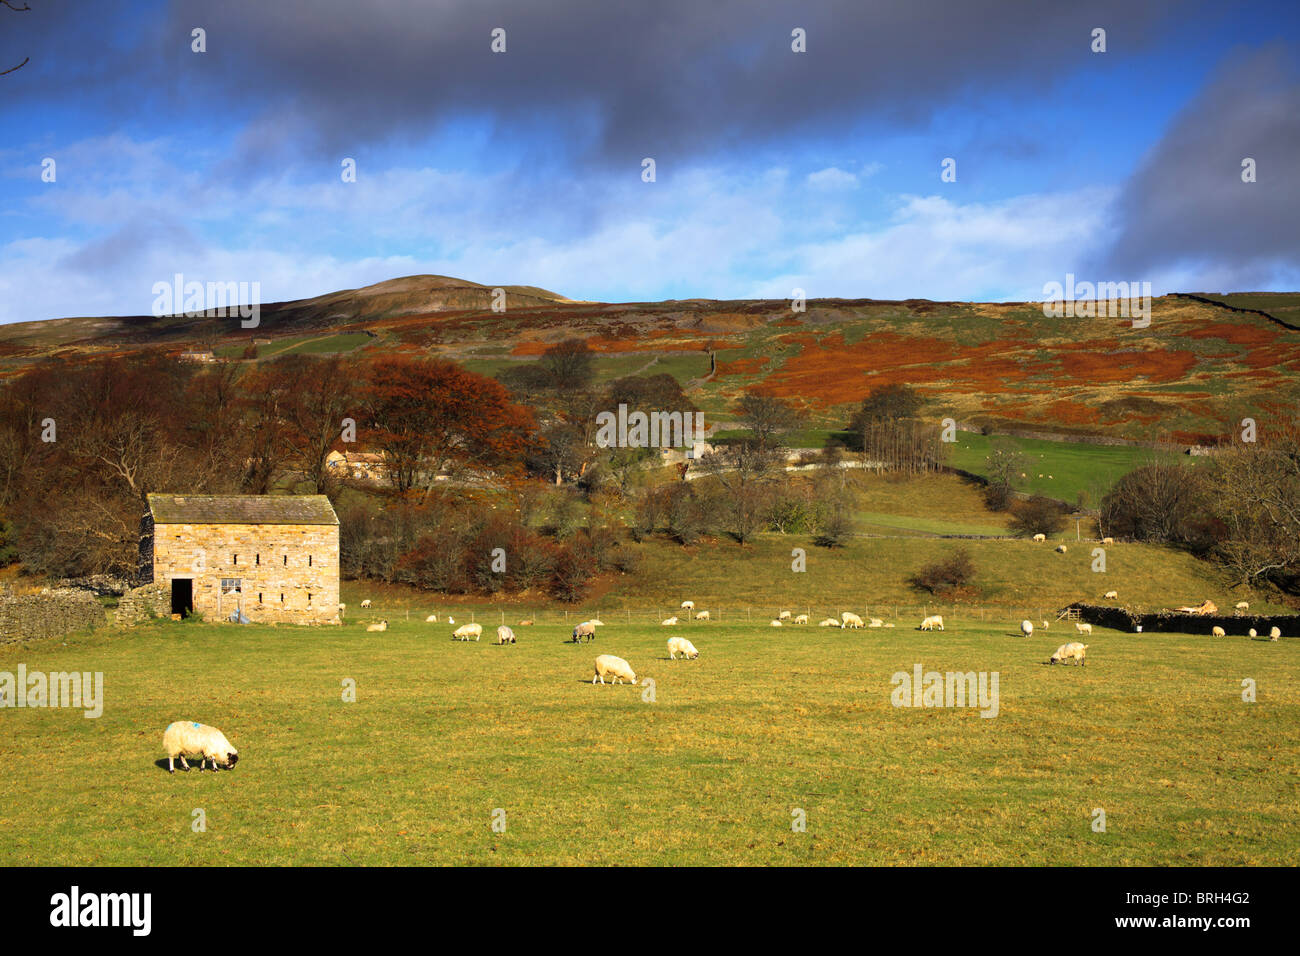 barn with sheep in the field and hills in background covered in gorse and heather - Stock Image